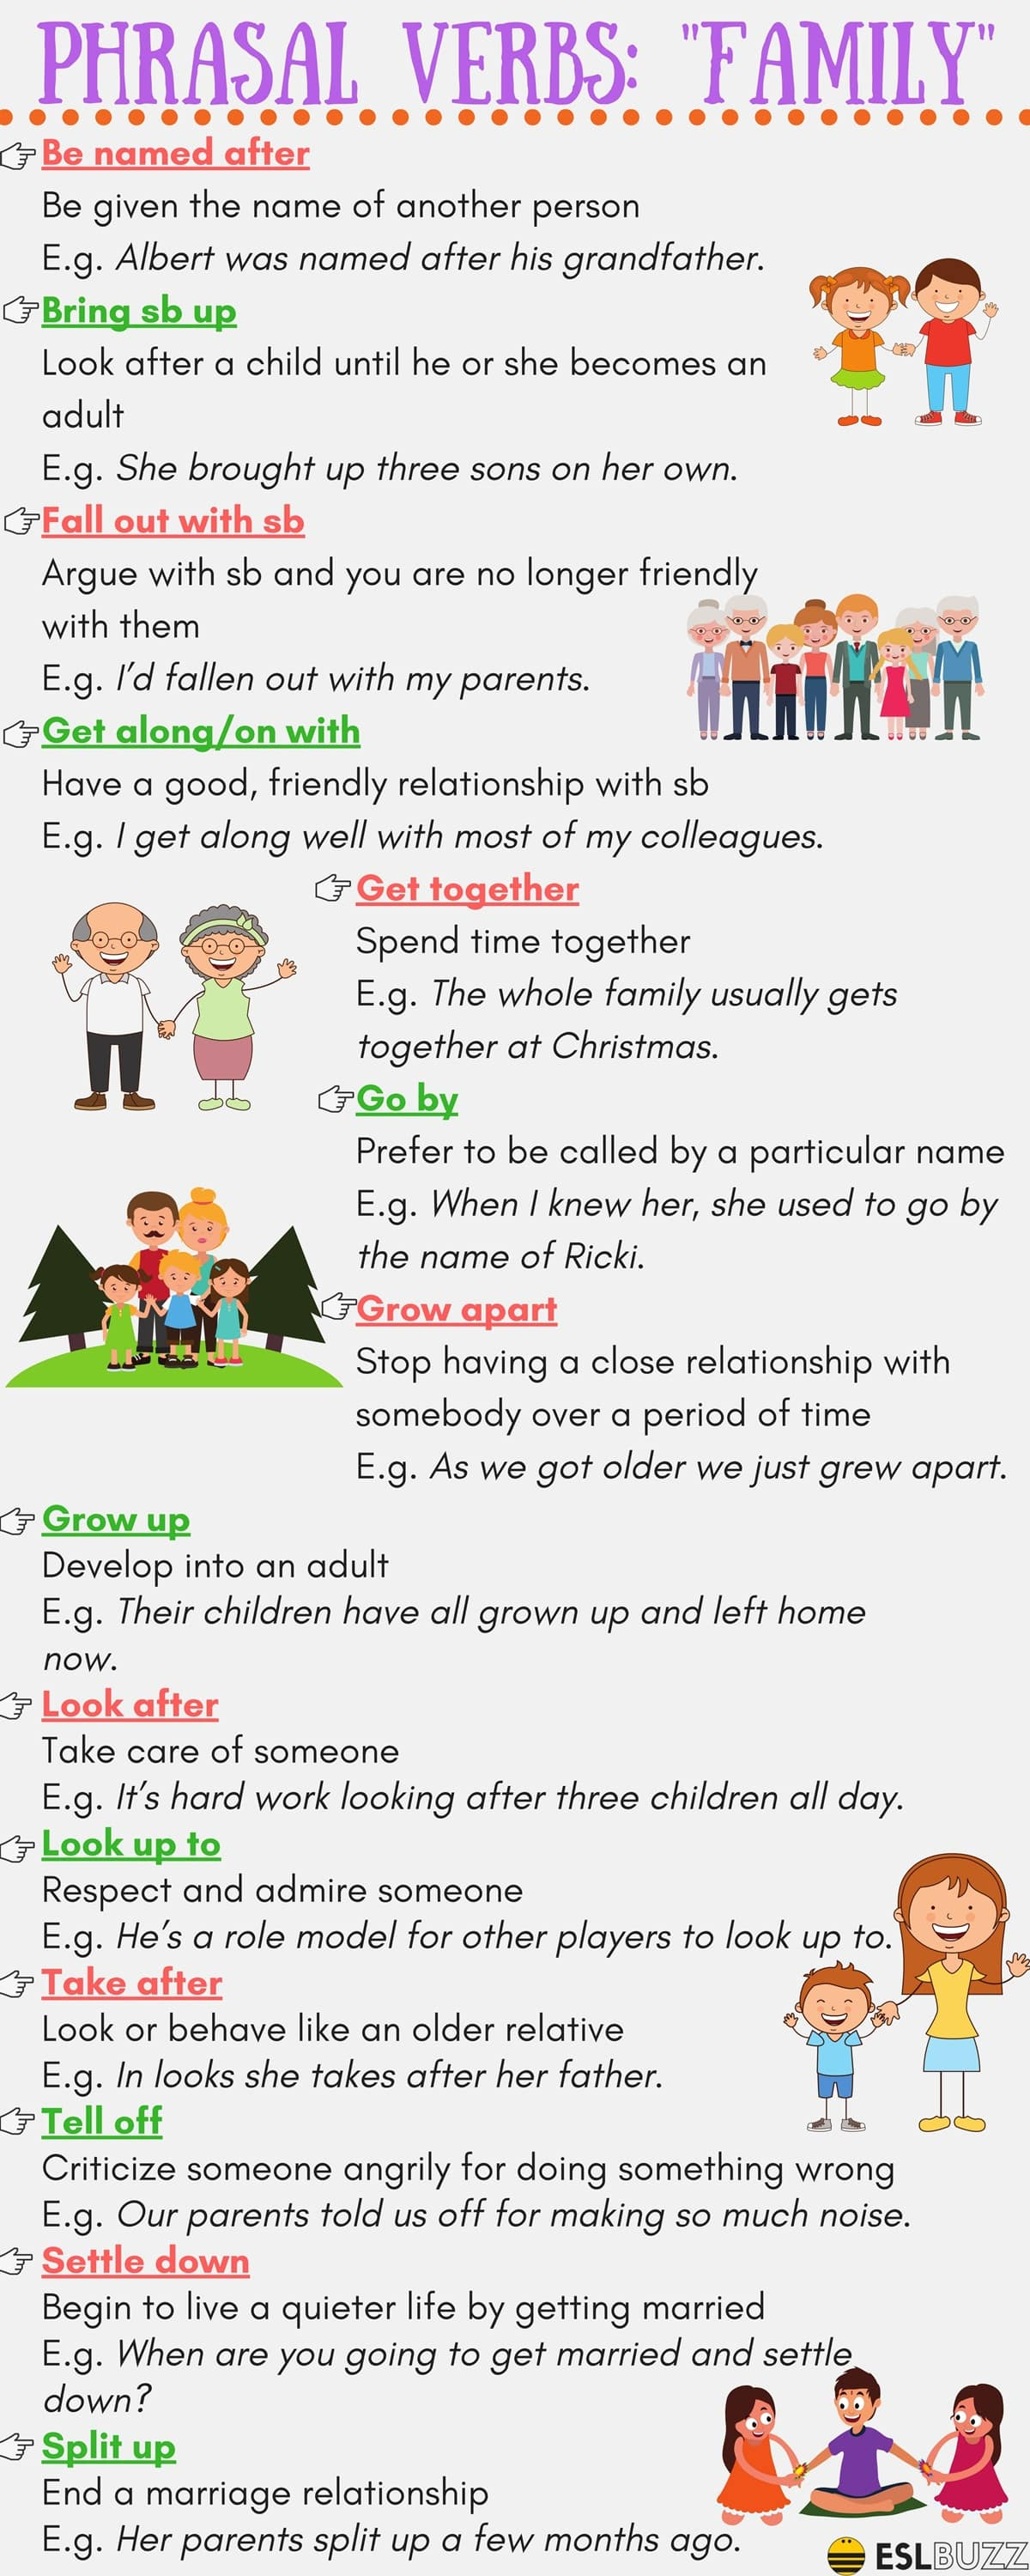 English Phrasal Verbs for Communication 3